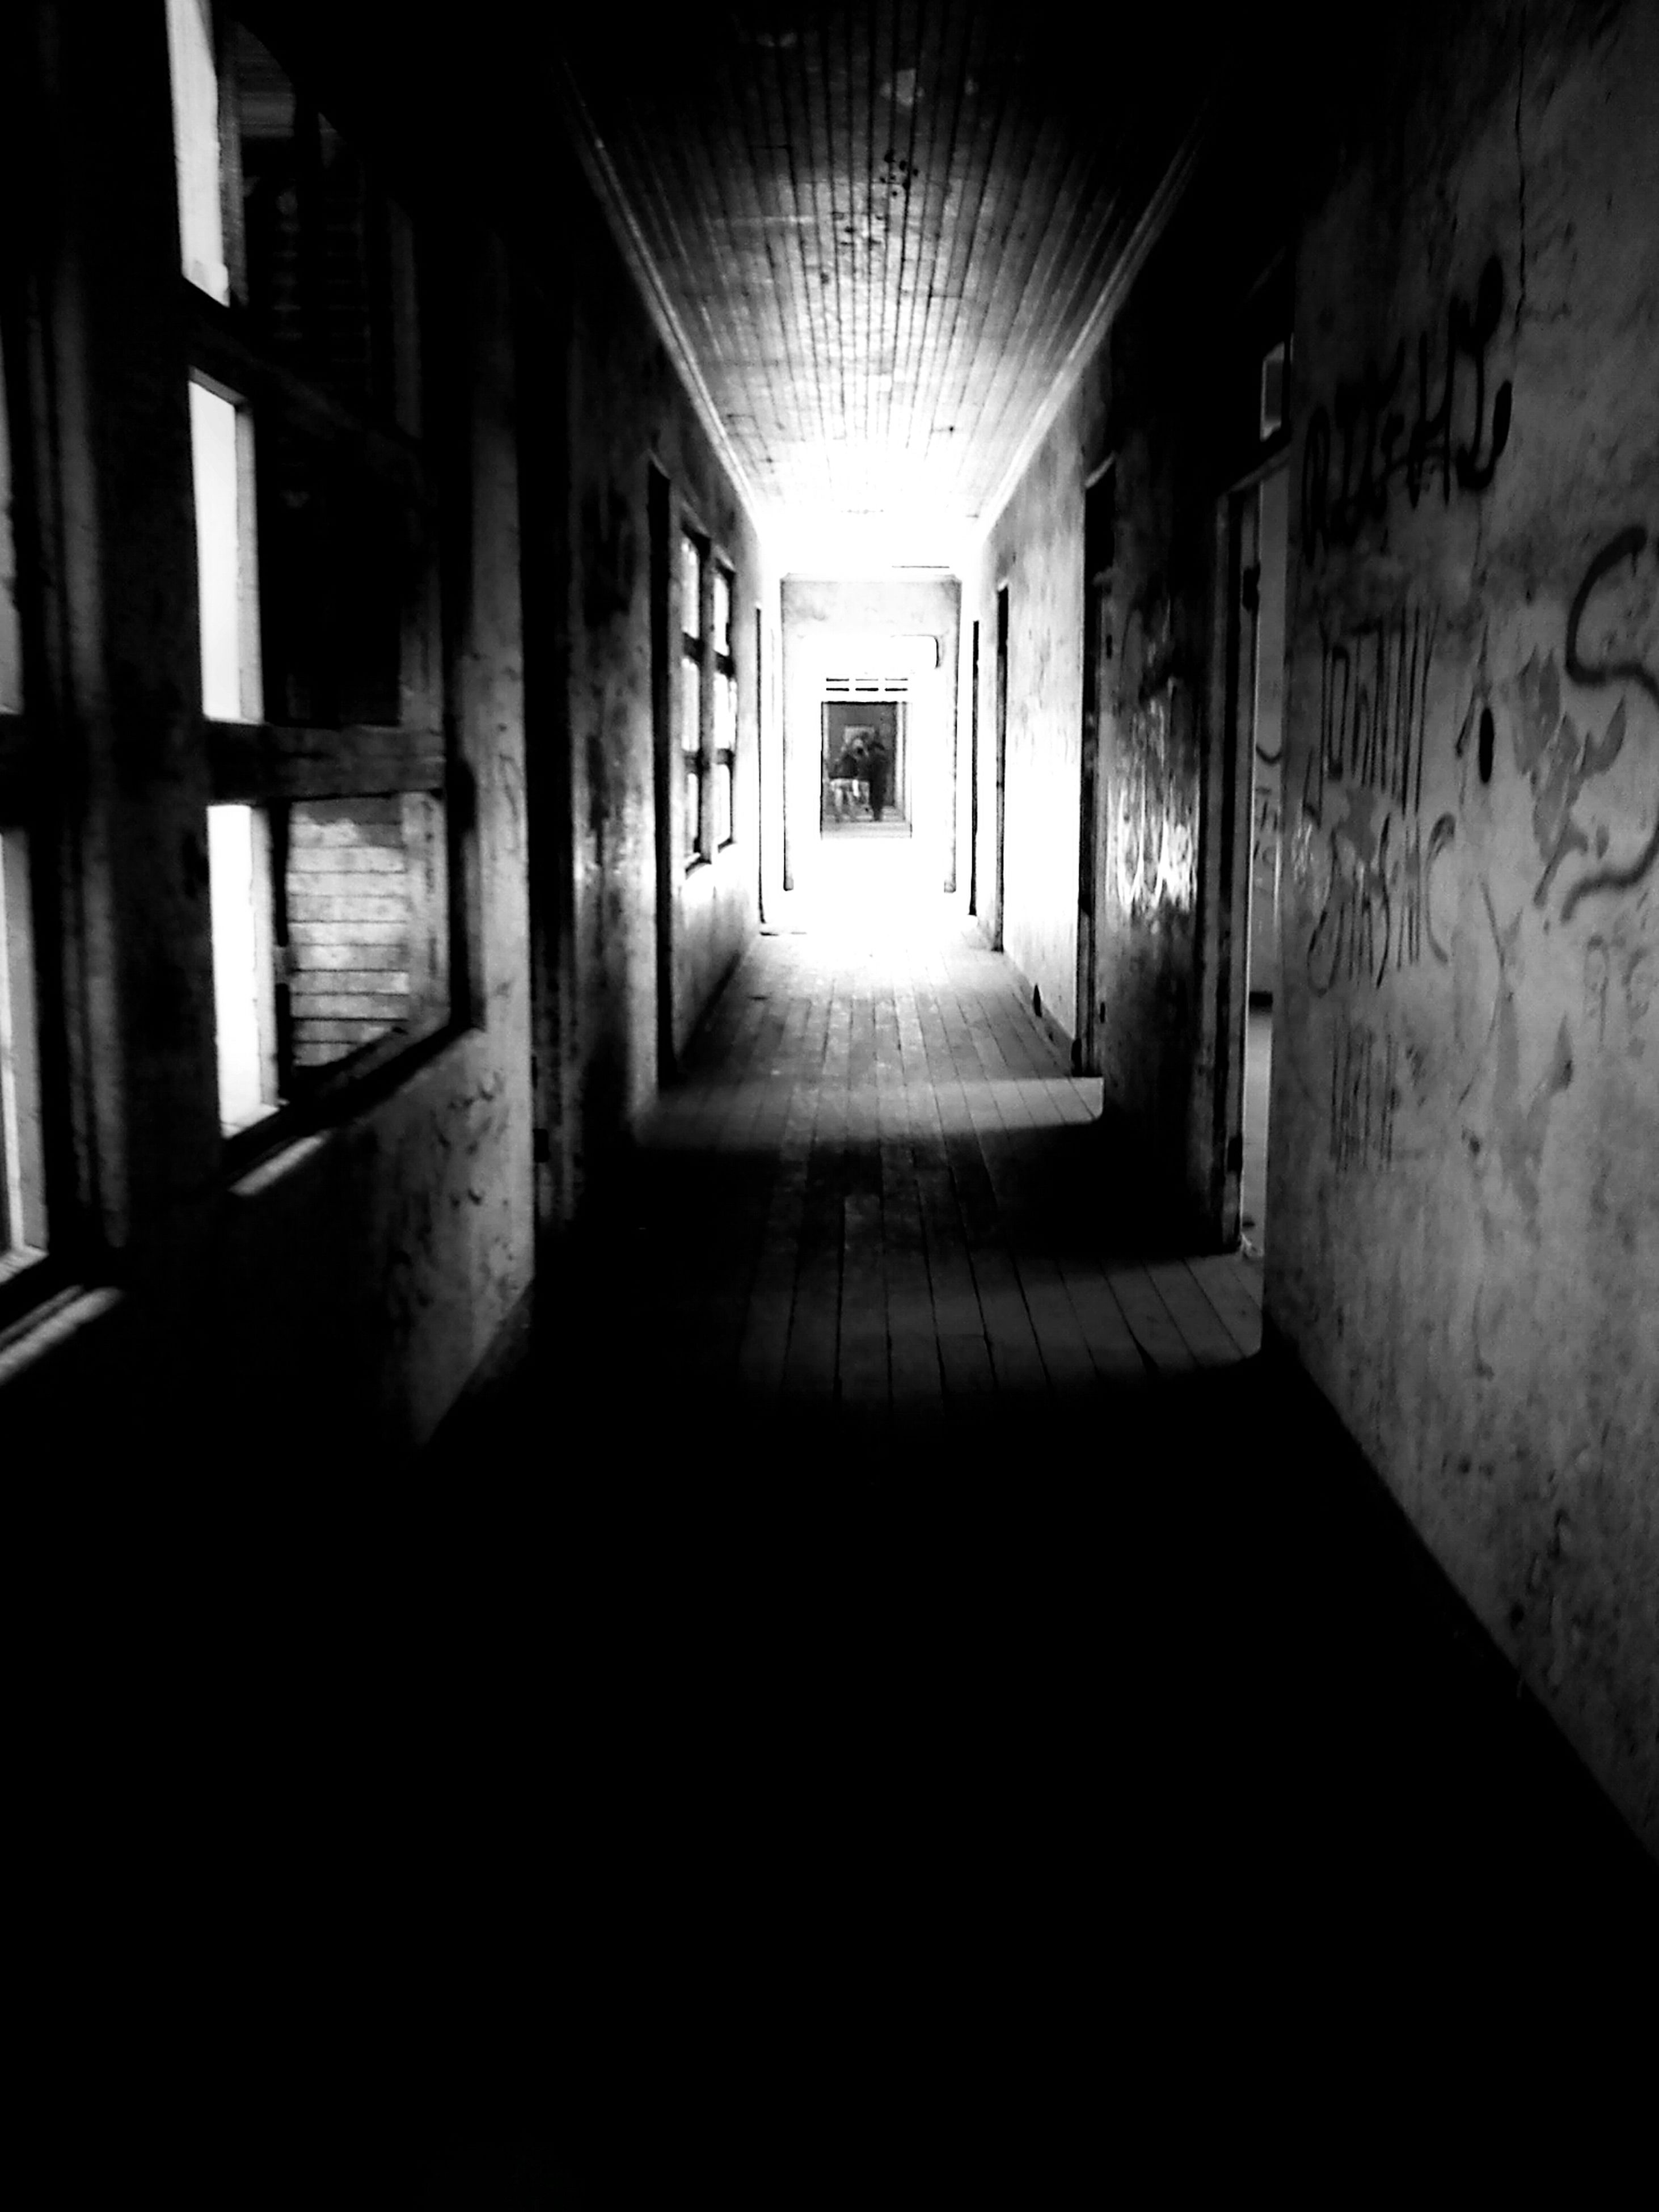 indoors, architecture, corridor, built structure, the way forward, illuminated, empty, wall - building feature, building, diminishing perspective, narrow, door, absence, flooring, wall, no people, interior, dark, ceiling, lighting equipment